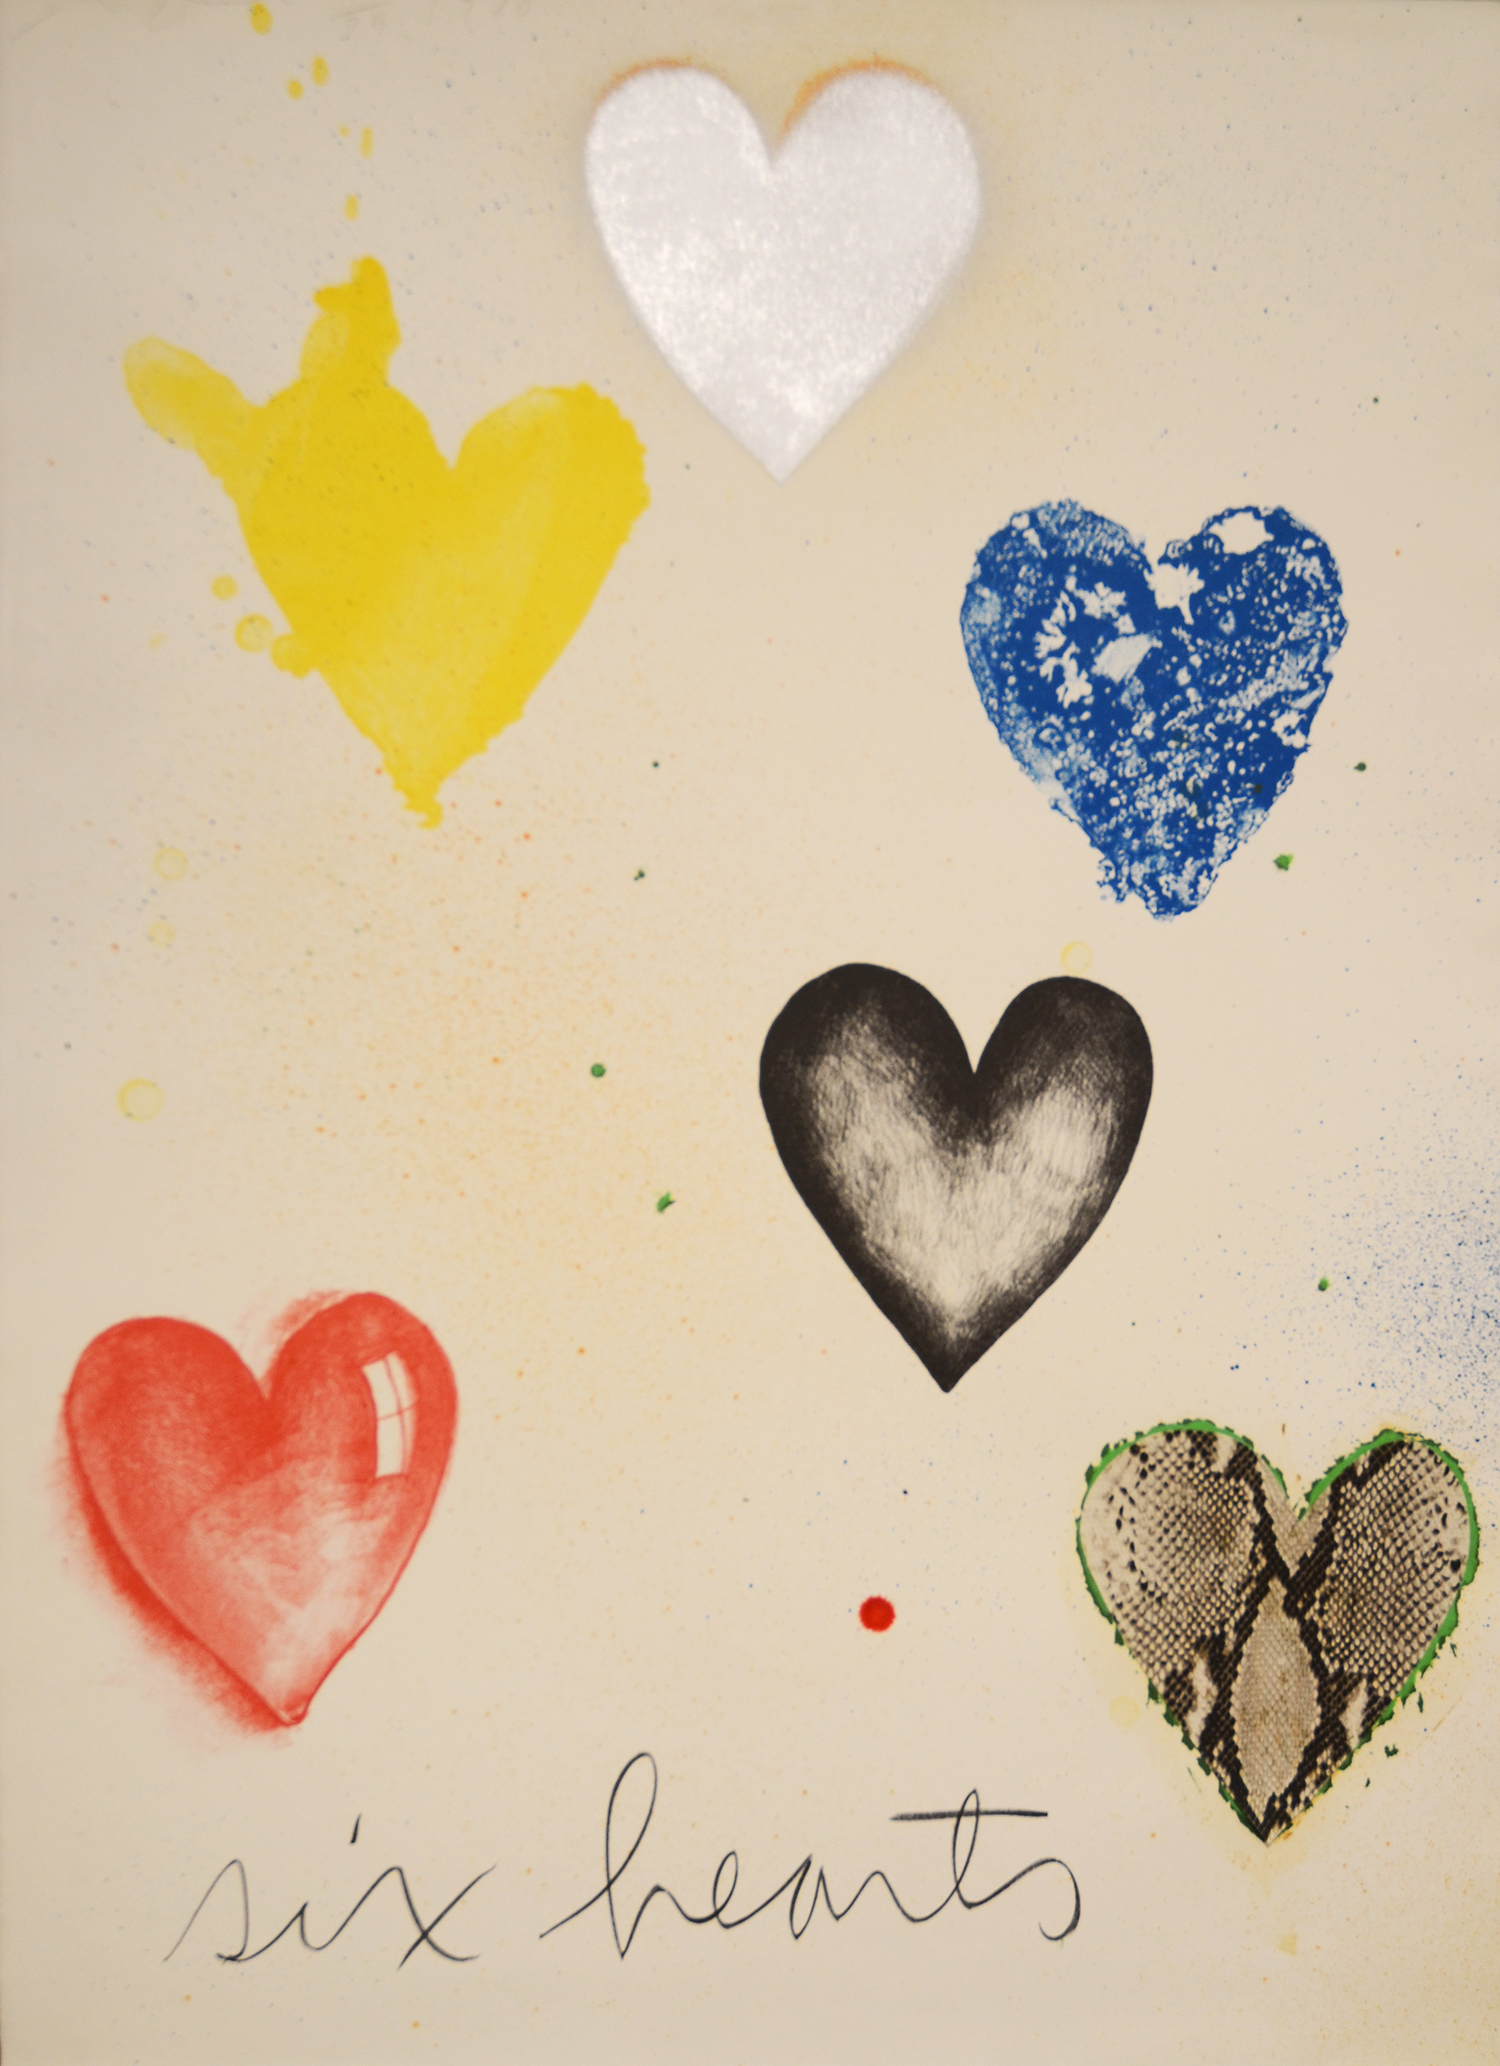 Six Hearts by Jim Dine